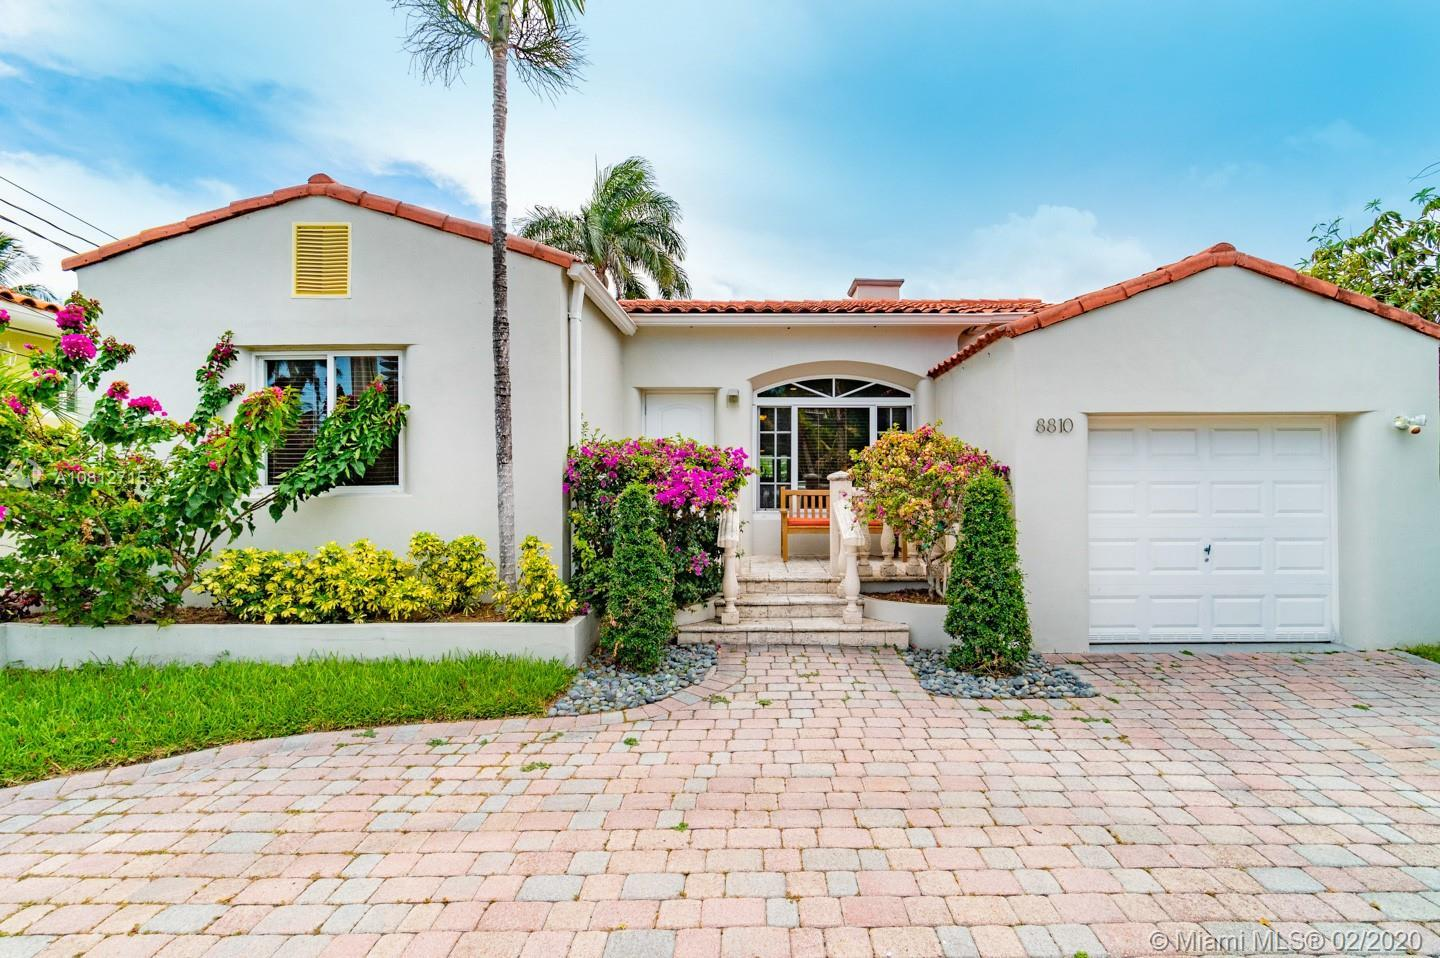 Rarely available 4Bd/3Ba + 1 Car Garage in the coveted beachfront community of Surfside. Situated on